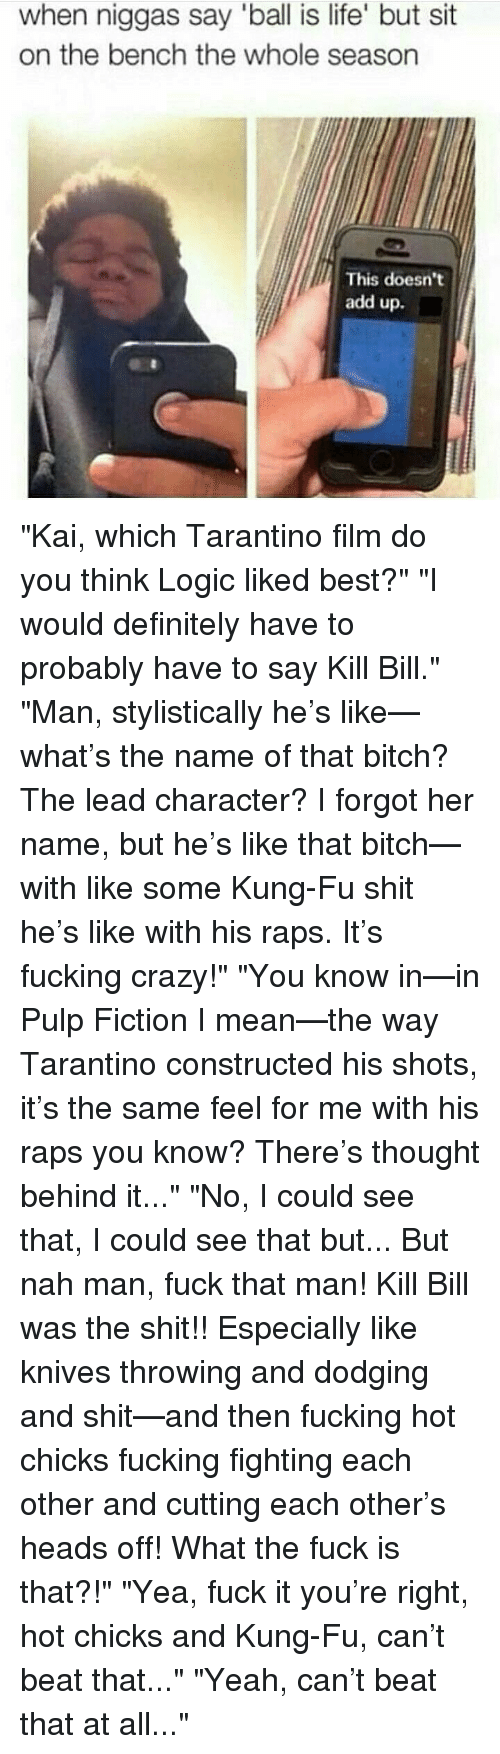 """Pulp Fiction: when niggas say """"ball is life' but sit  on the bench the whole season  This doesn't  add up. """"Kai, which Tarantino film do you think Logic liked best?"""" """"I would definitely have to probably have to say Kill Bill."""" """"Man, stylistically he's like—what's the name of that bitch? The lead character? I forgot her name, but he's like that bitch—with like some Kung-Fu shit he's like with his raps. It's fucking crazy!"""" """"You know in—in Pulp Fiction I mean—the way Tarantino constructed his shots, it's the same feel for me with his raps you know? There's thought behind it..."""" """"No, I could see that, I could see that but... But nah man, fuck that man! Kill Bill was the shit!! Especially like knives throwing and dodging and shit—and then fucking hot chicks fucking fighting each other and cutting each other's heads off! What the fuck is that?!"""" """"Yea, fuck it you're right, hot chicks and Kung-Fu, can't beat that..."""" """"Yeah, can't beat that at all..."""""""